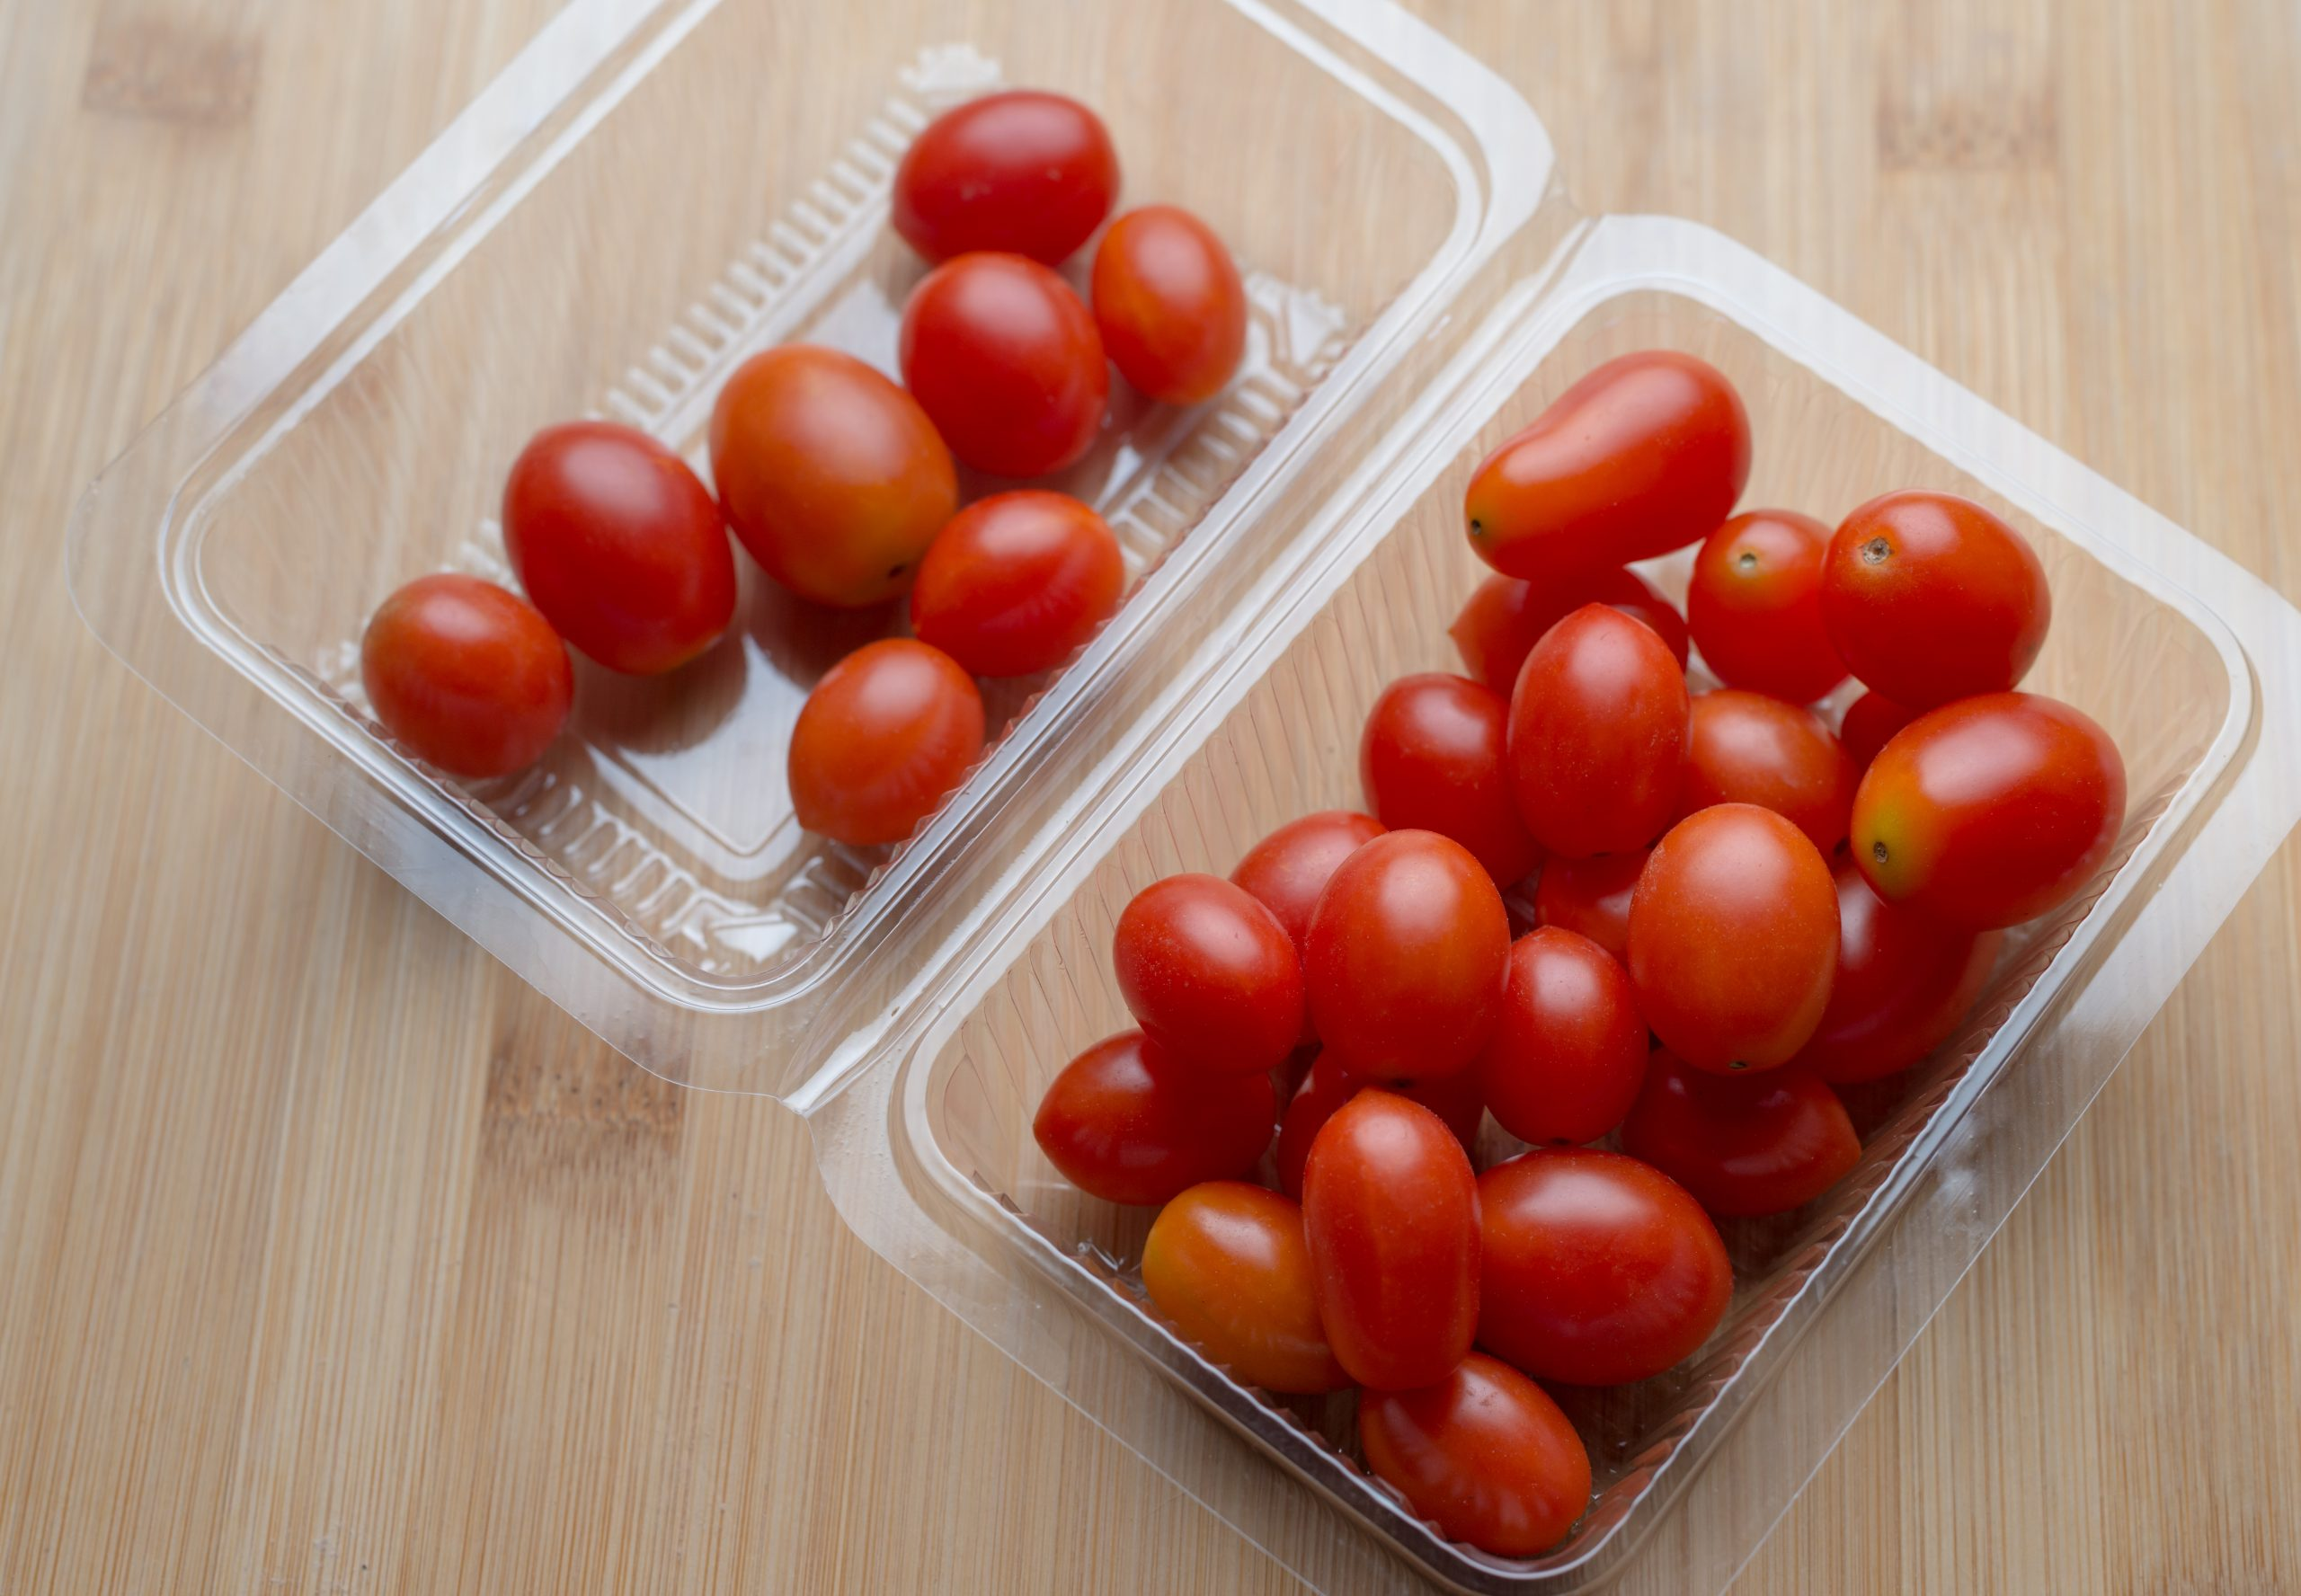 tomatoes in sustainable plastic carton